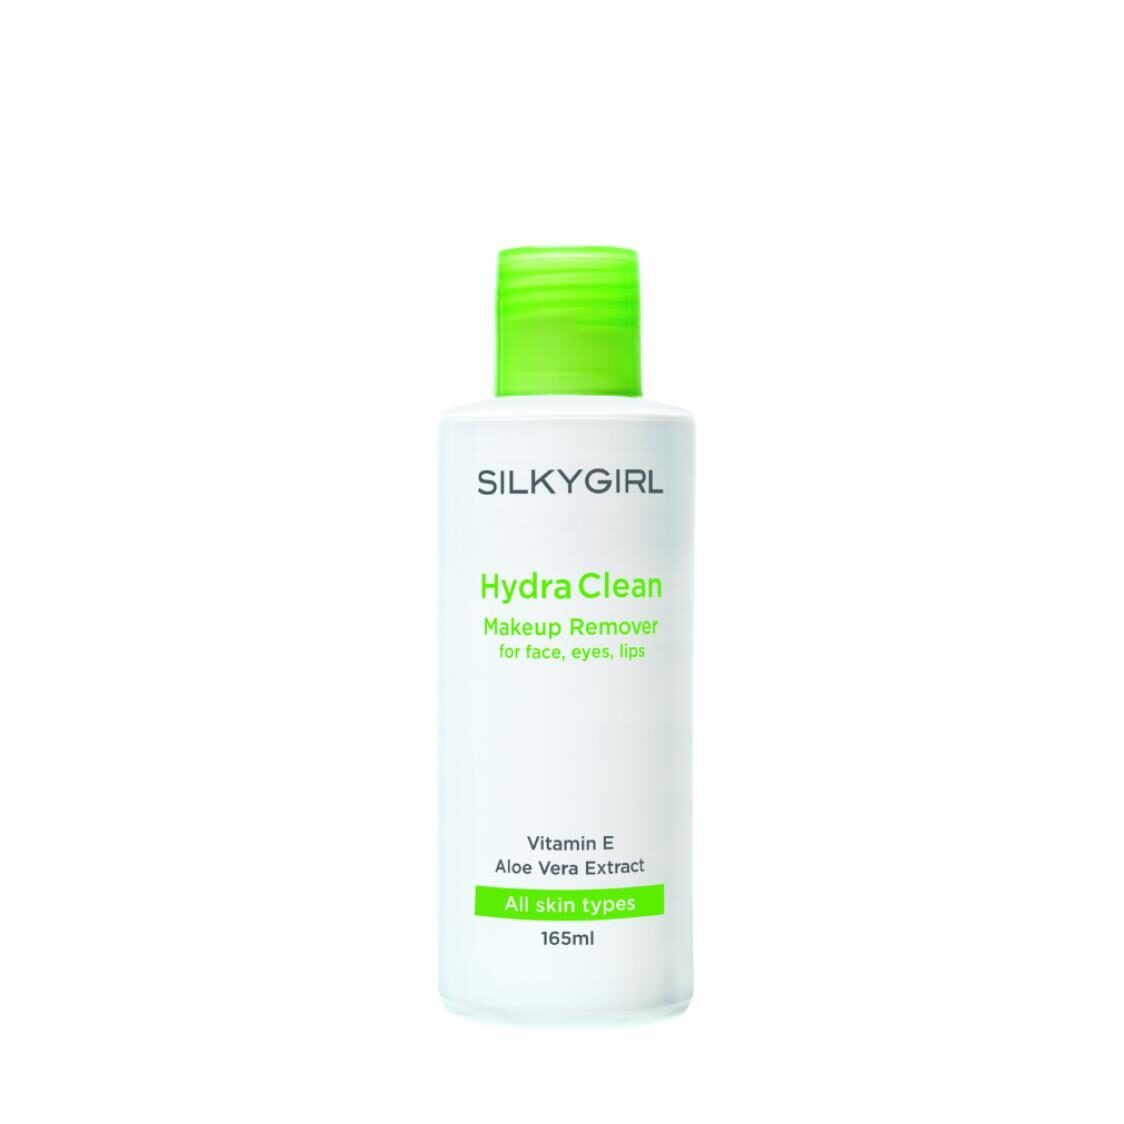 Silkygirl Hydra Clean Makeup Remover